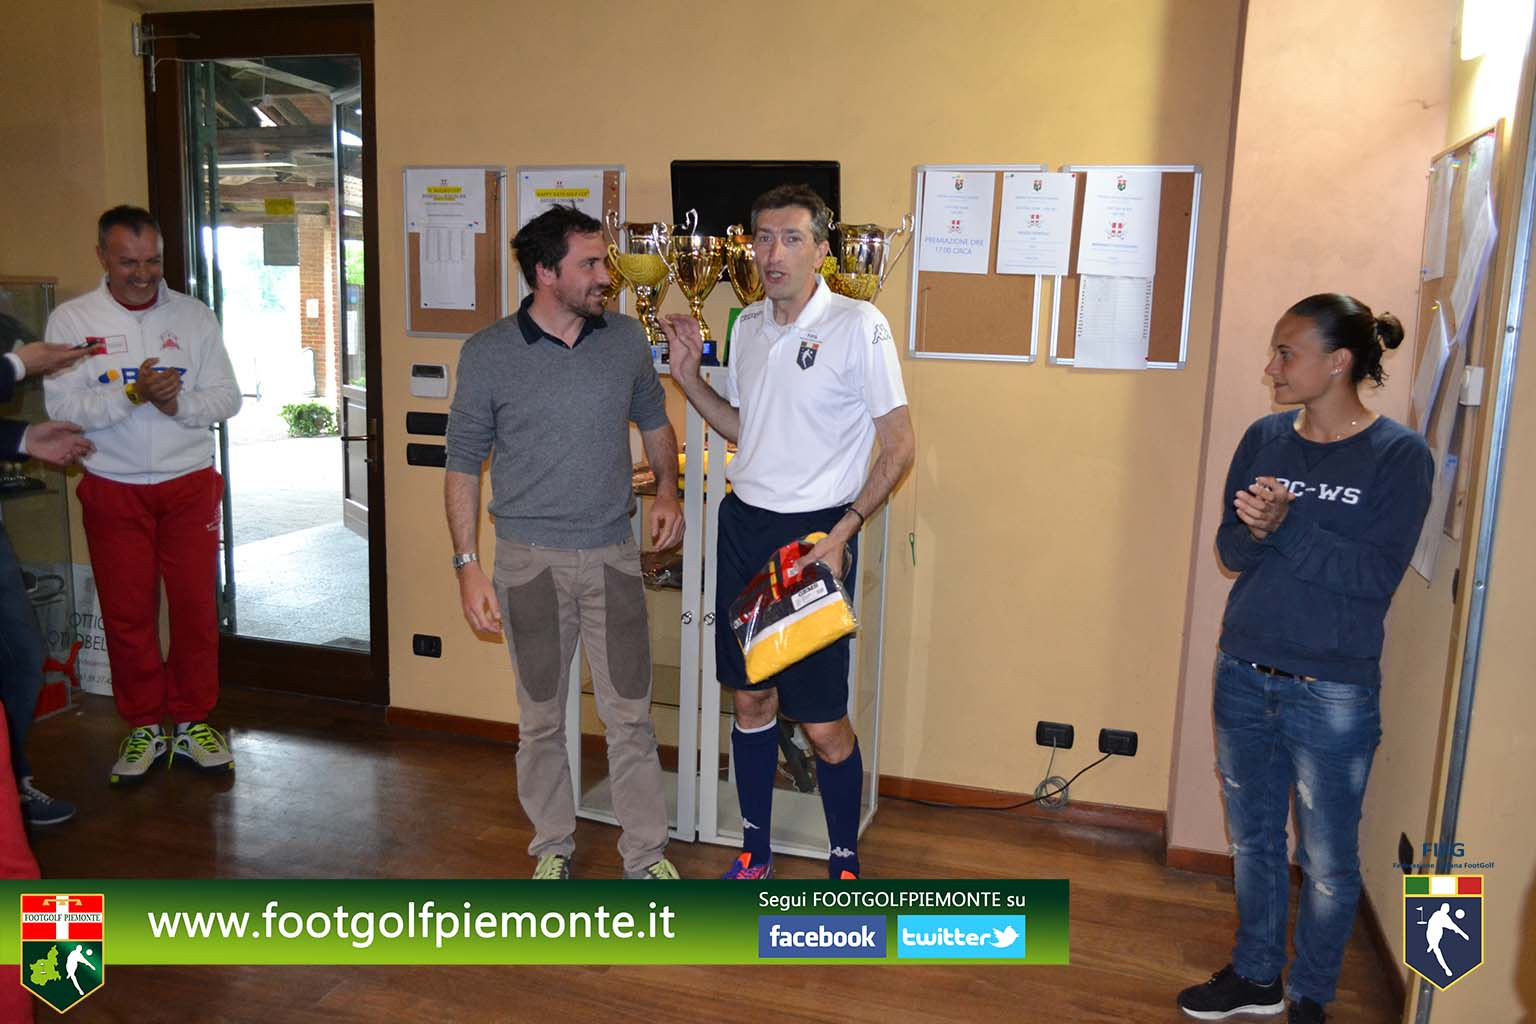 FOTO 9 Regions' Cup Footgolf Piemonte 2016 Golf Città di Asti (At) 30apr16-105